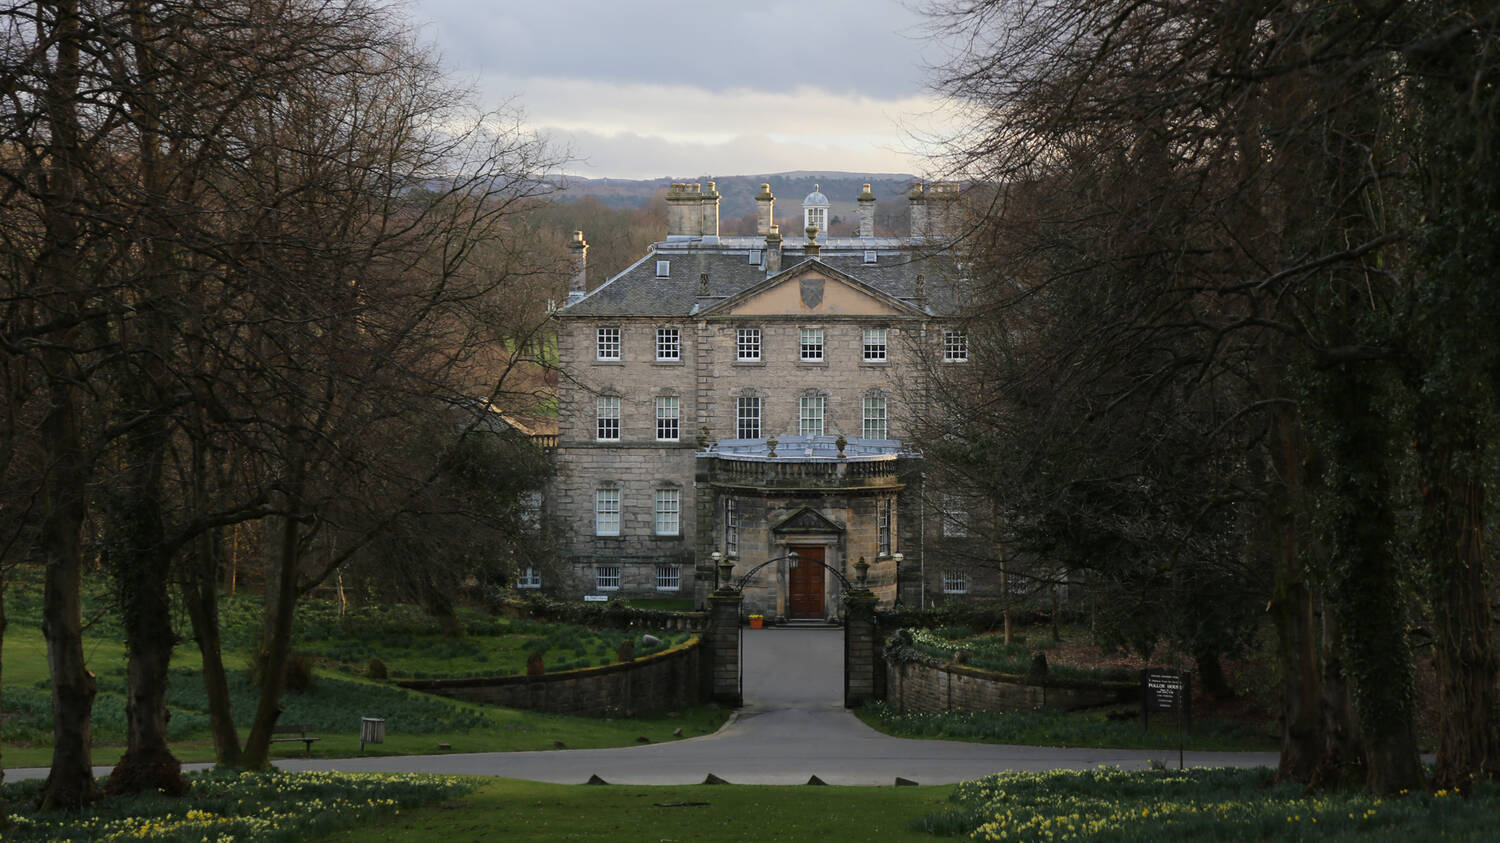 Looking down from the hill towards the front entrance of Pollok House, as the morning sun catches the east of the building. Hosts of daffodils pop out from the ground.